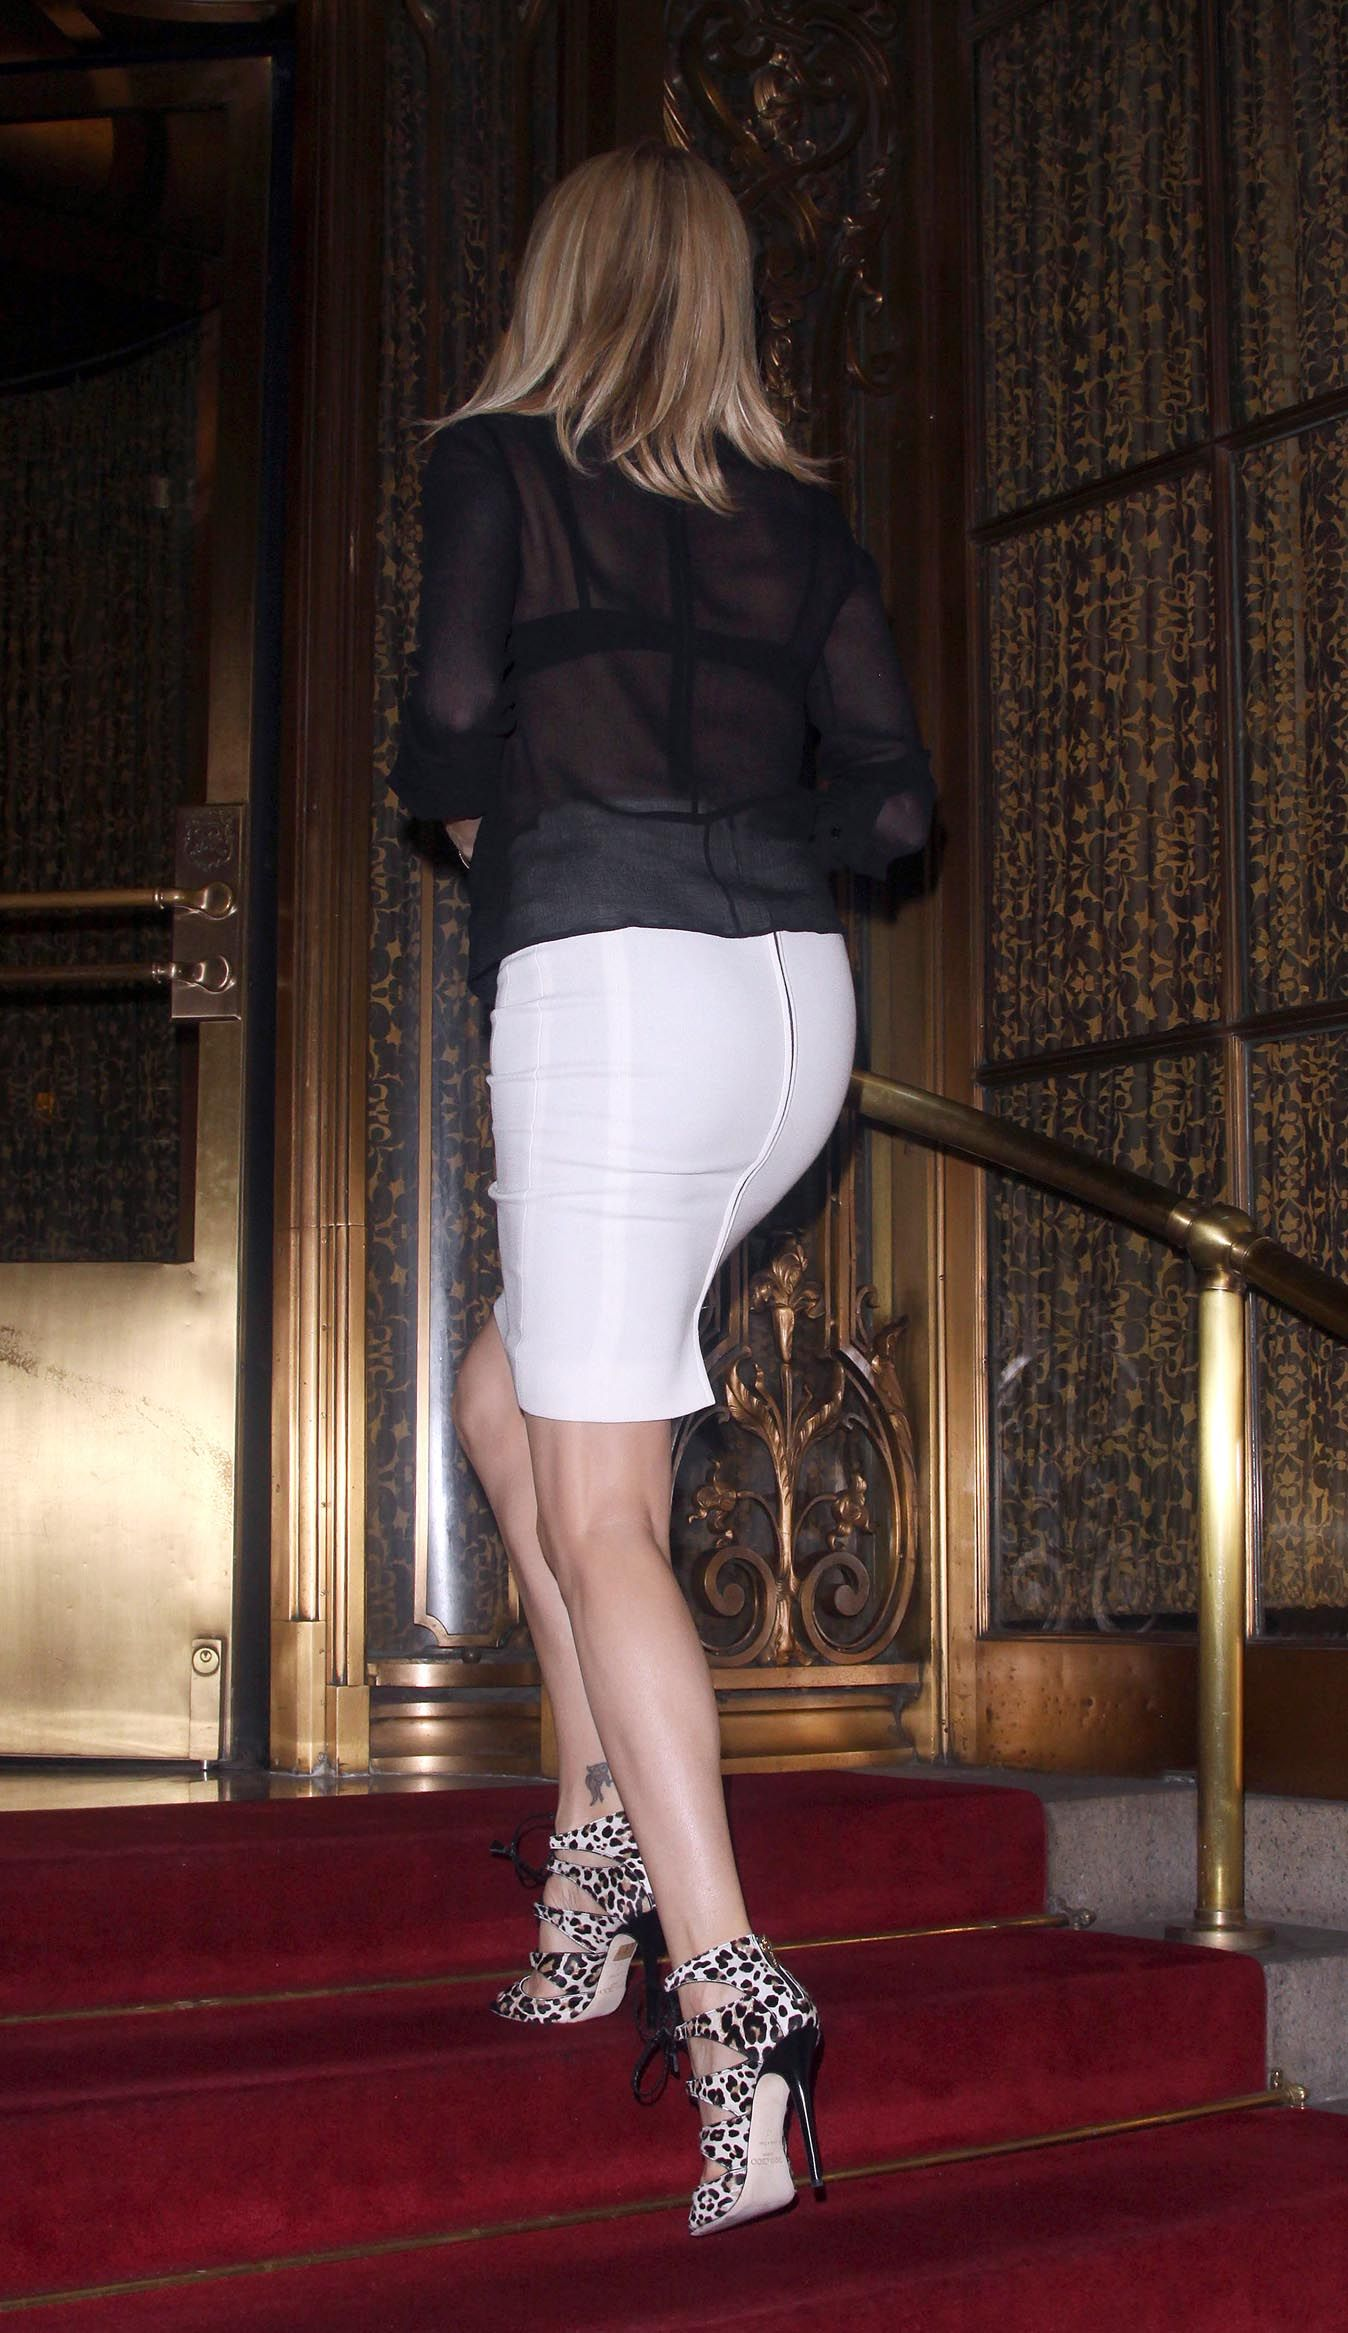 charlize theron and in a tight skirt and high